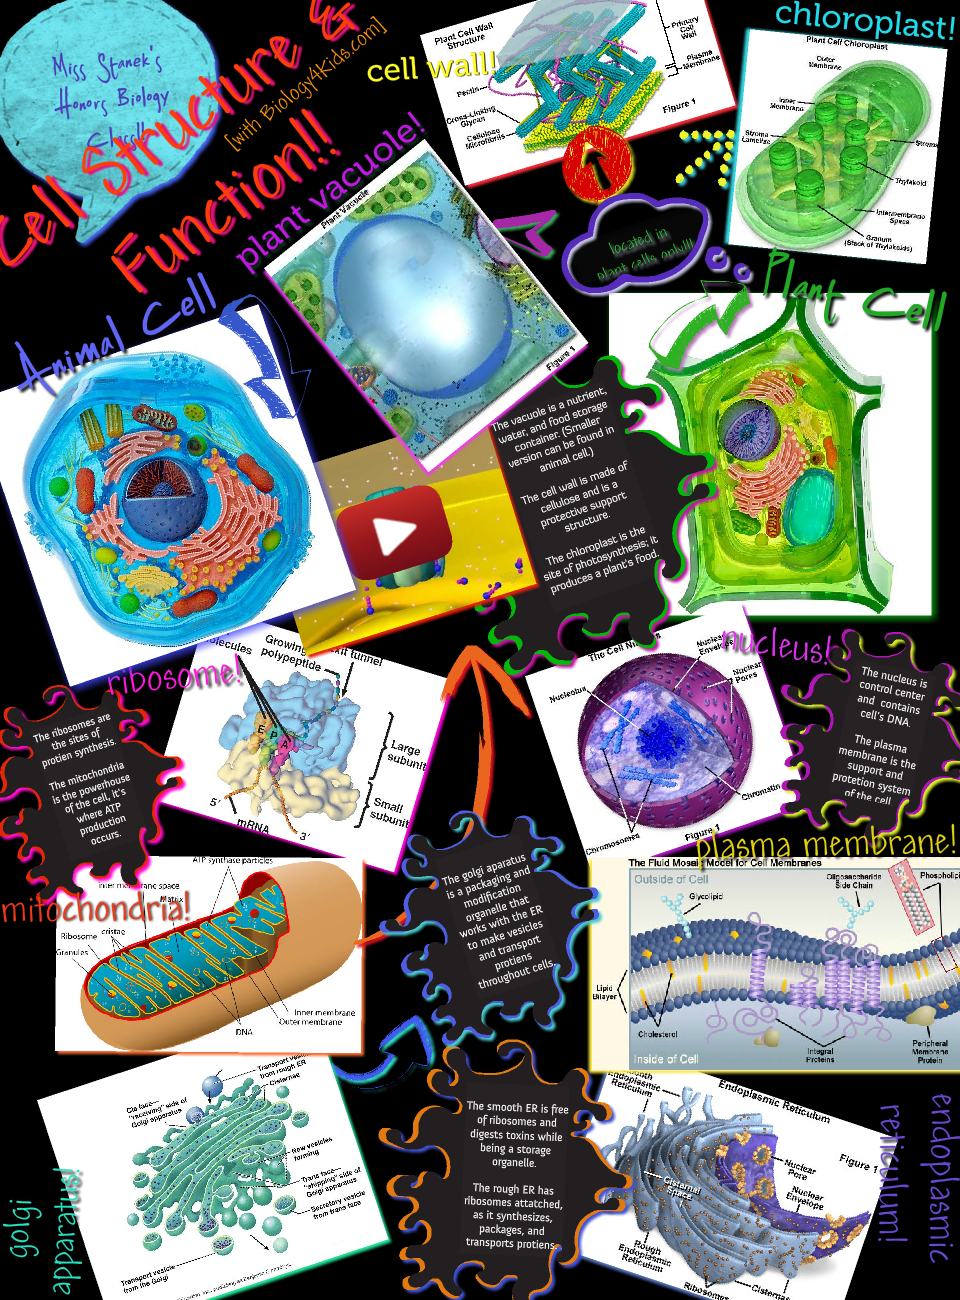 Many types of prokaryotic and eukaryotic cells have a cell